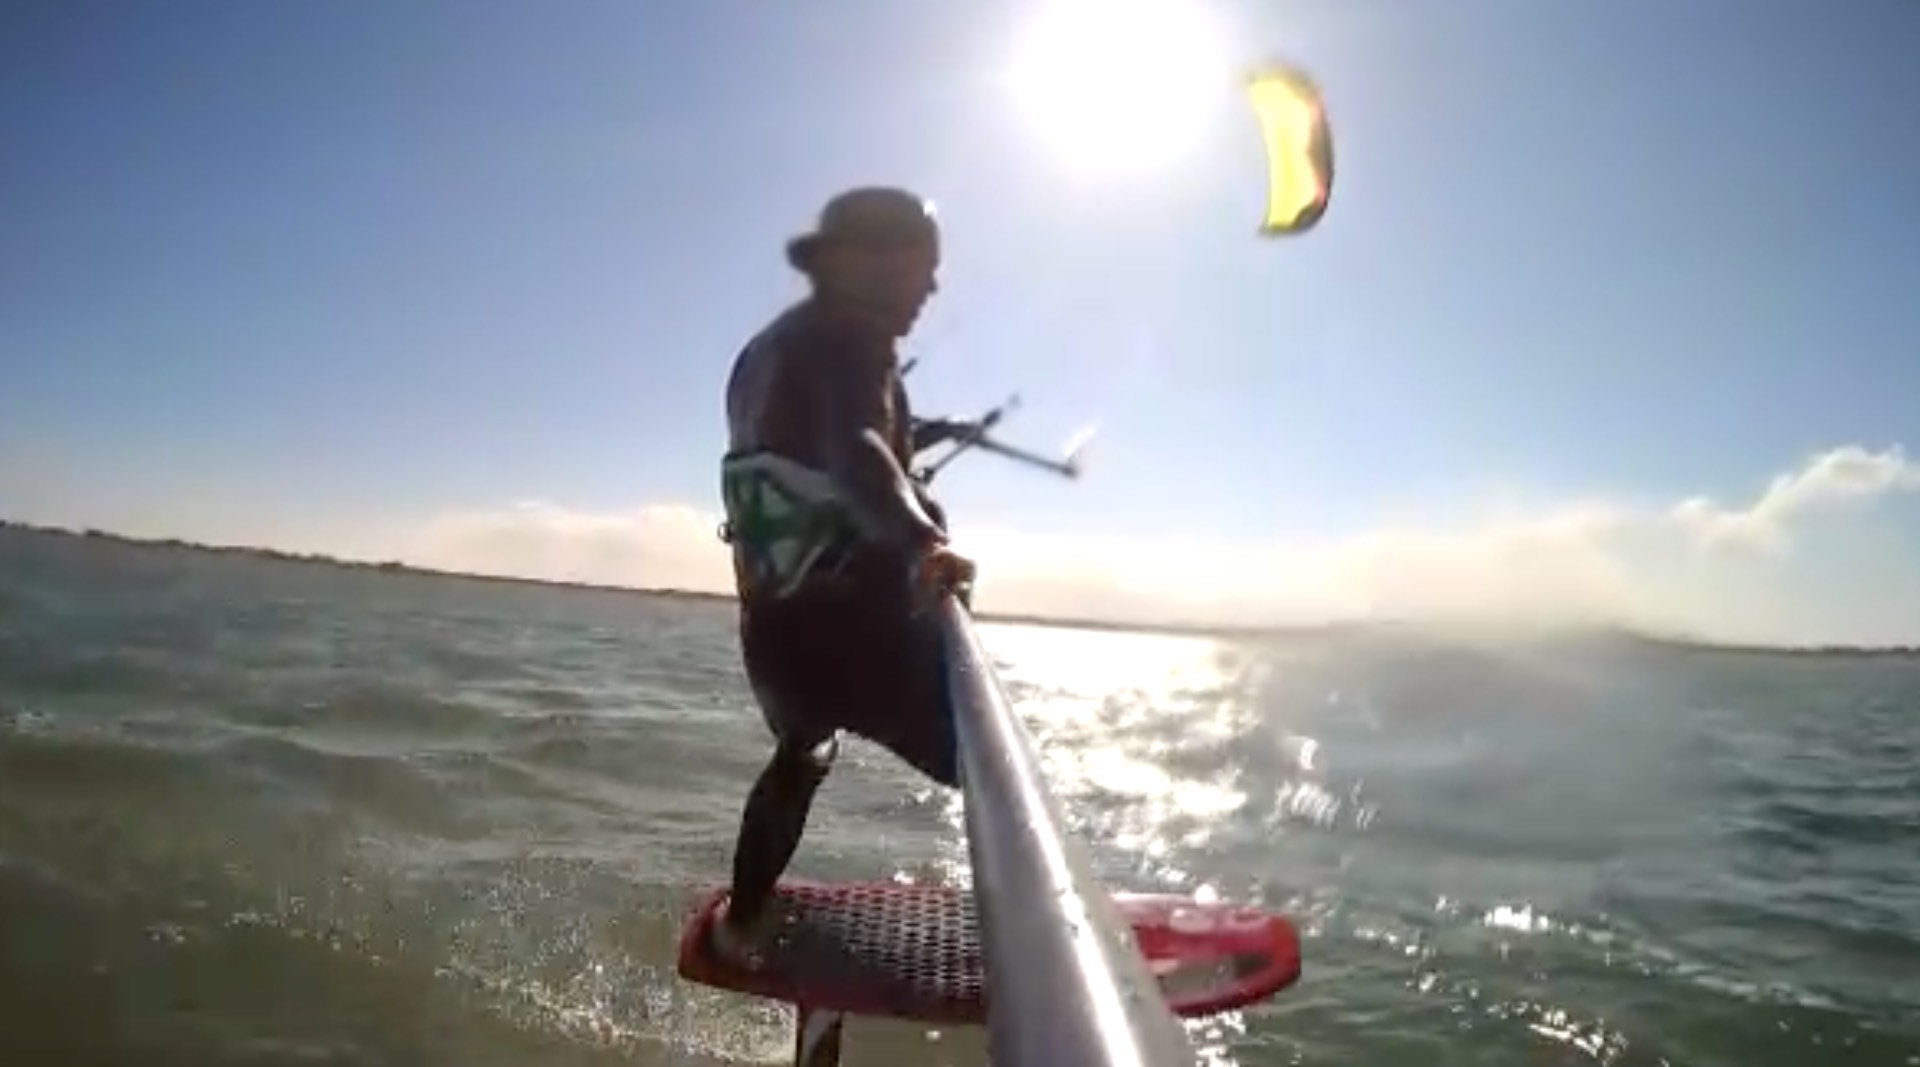 Kite surfing and foiling